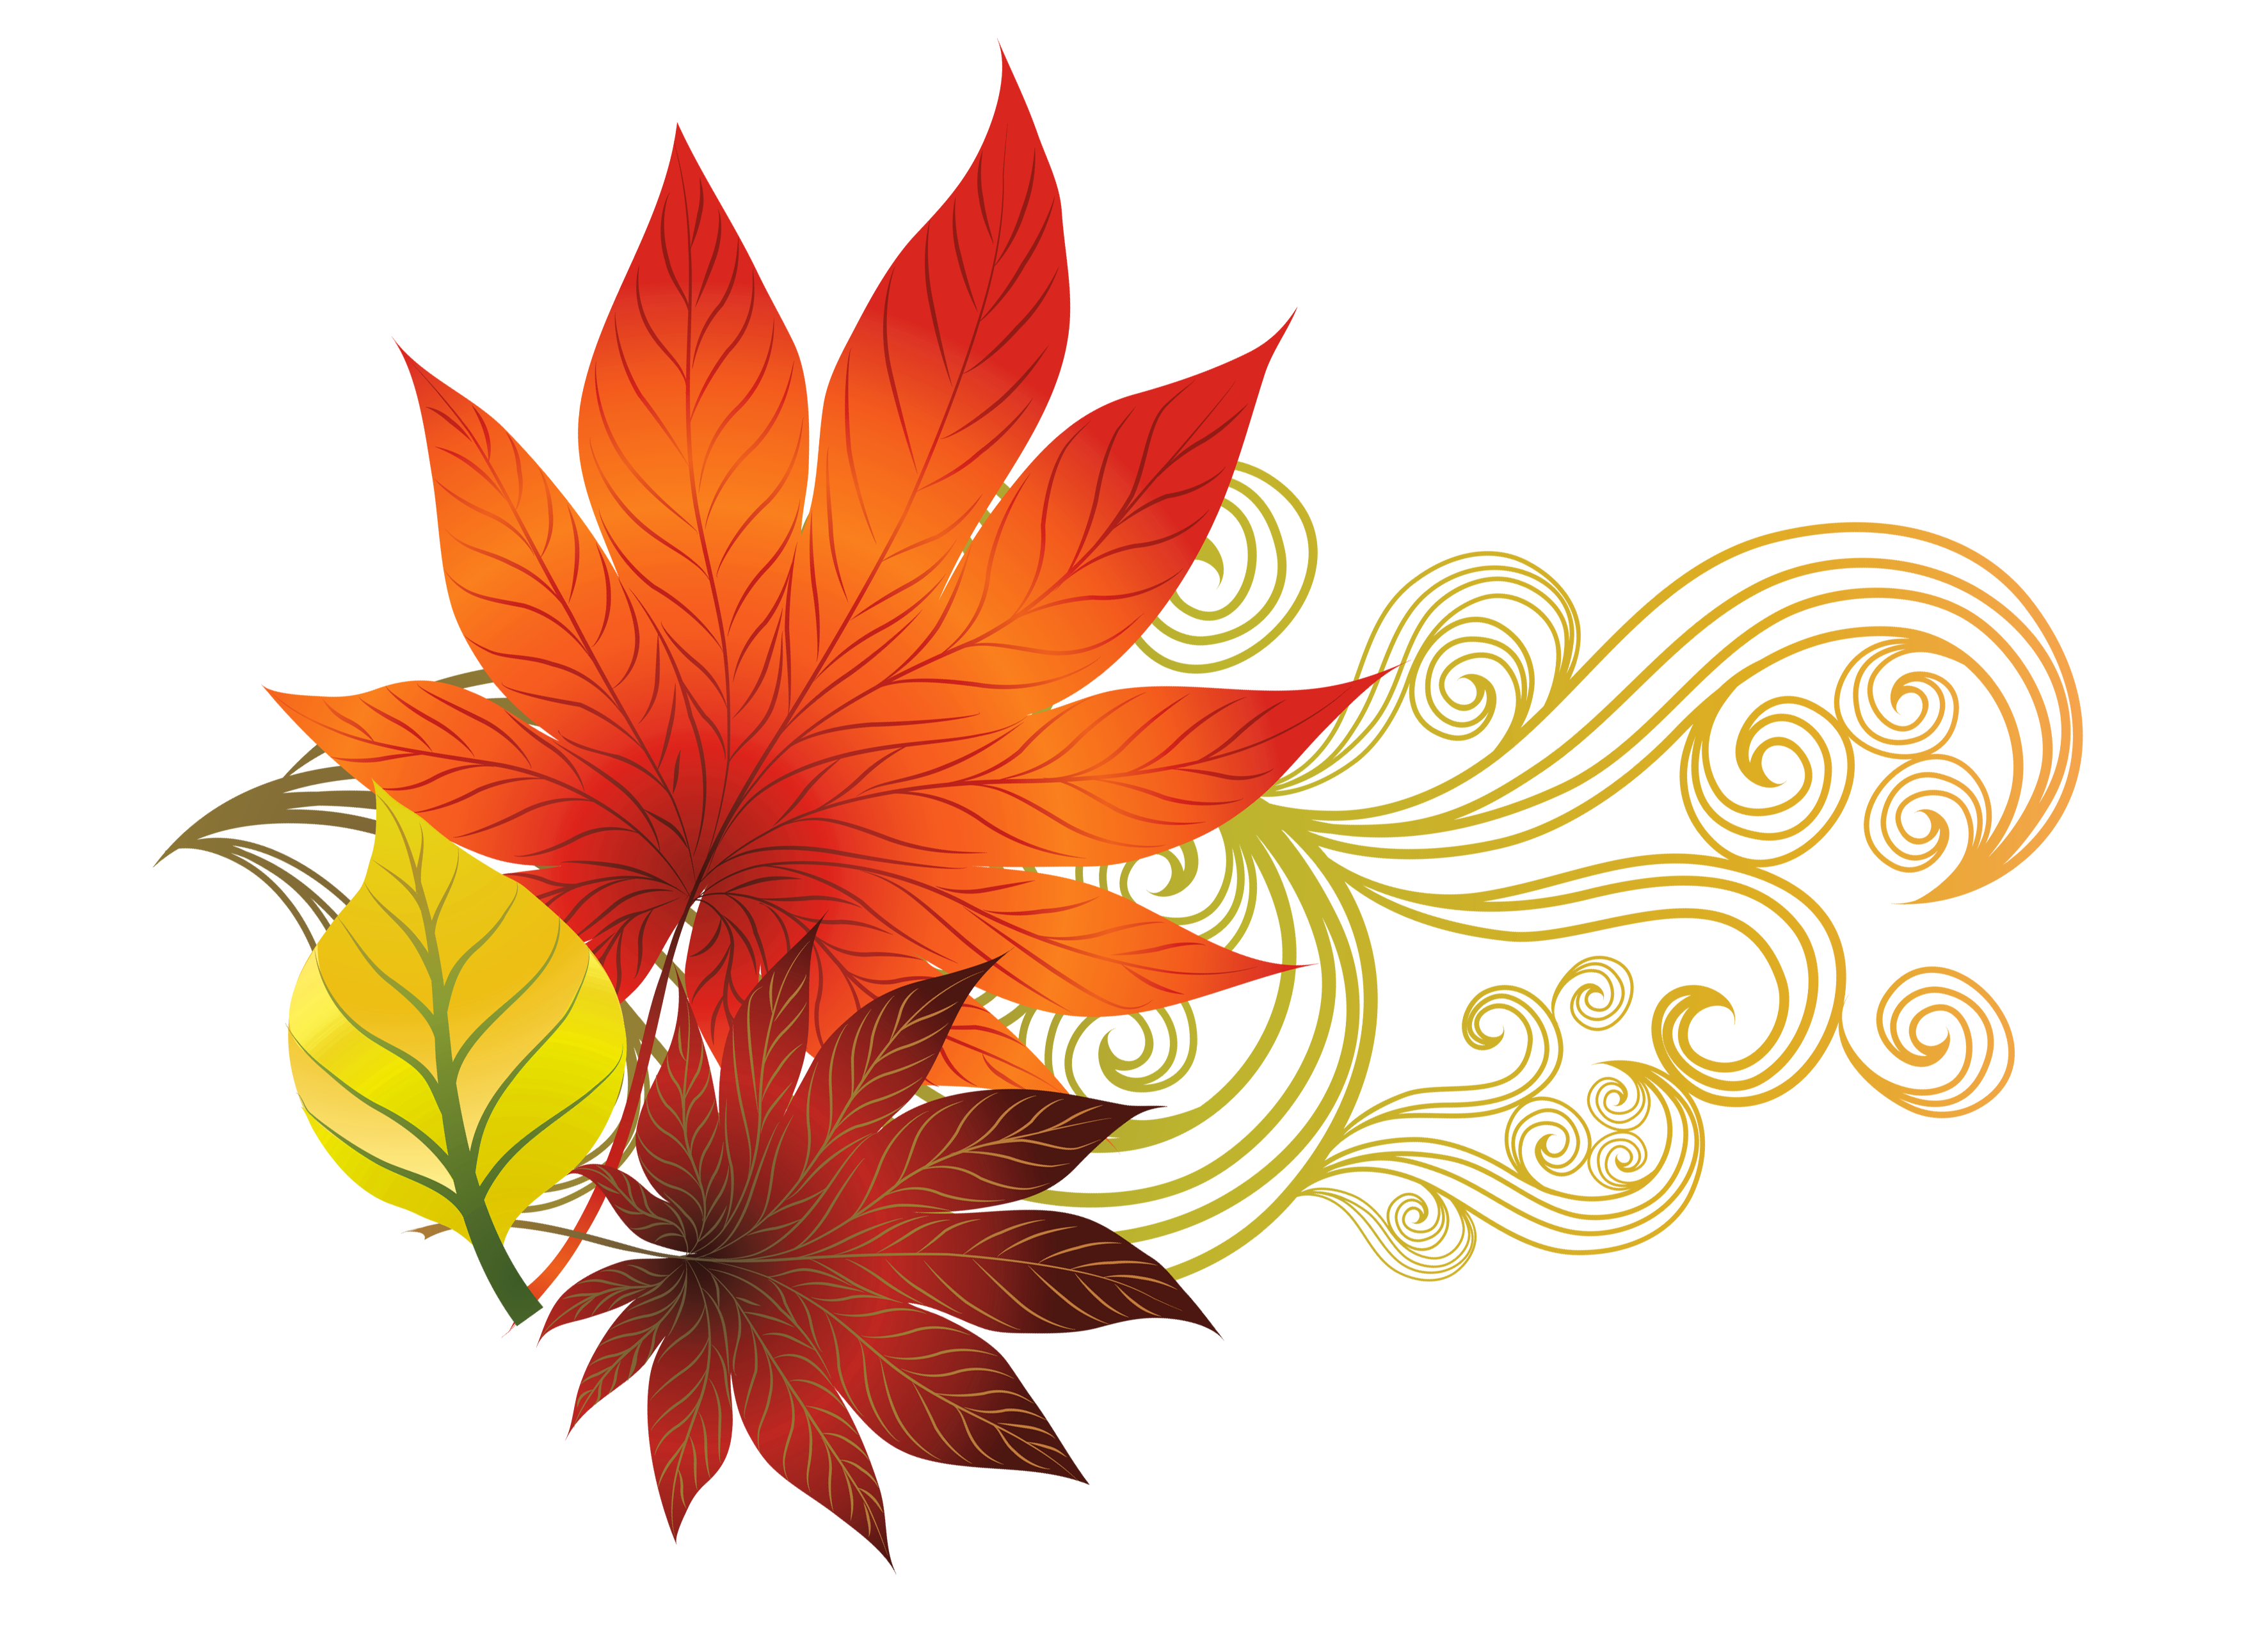 Fall leaves decoration png. Free clipart autumn